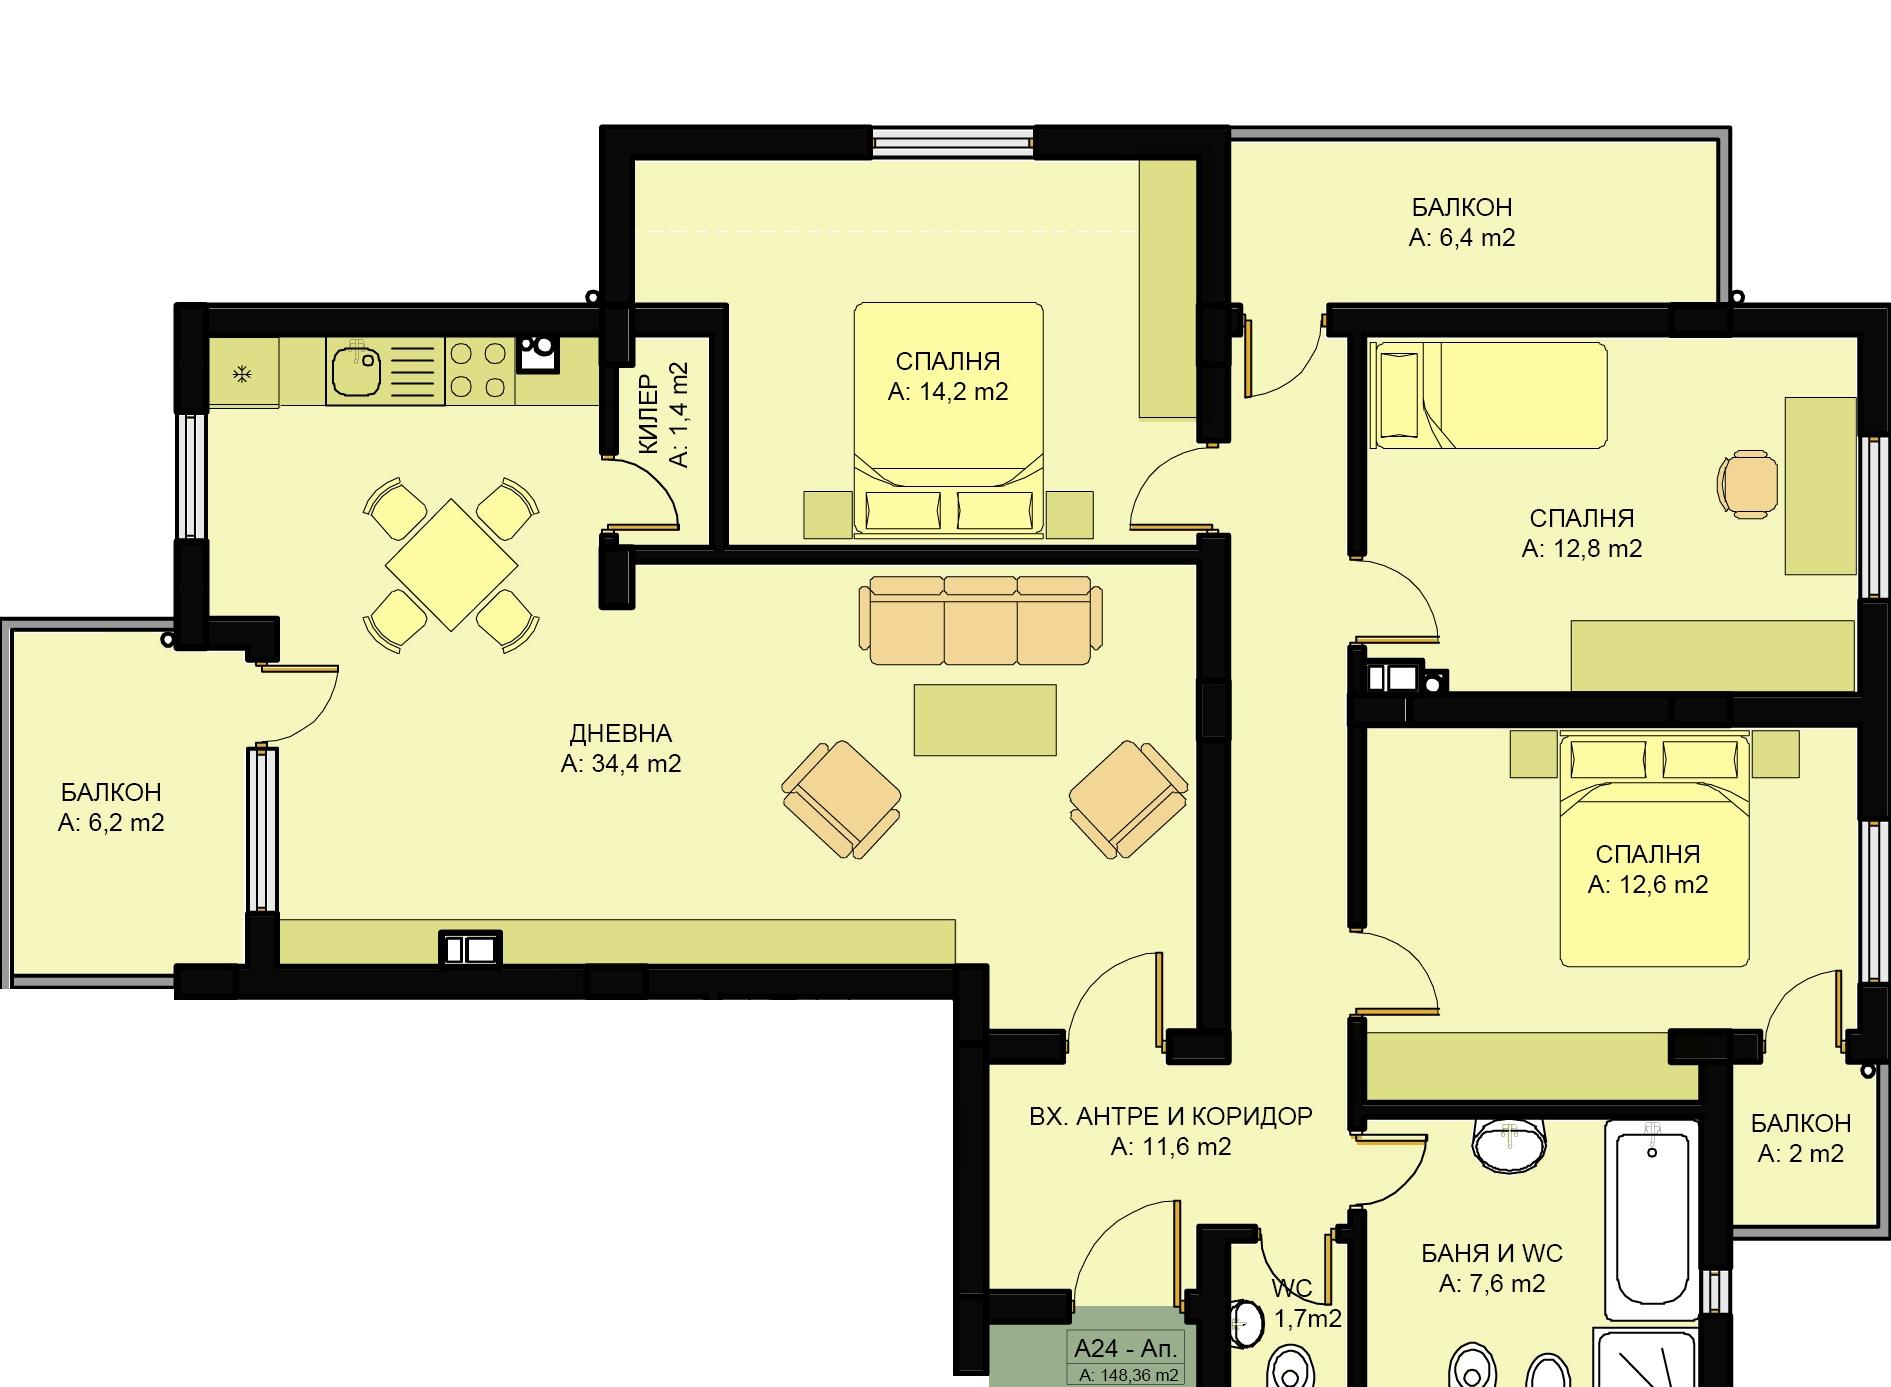 Complex family 3 three bedroom apartments www for Apartment complex layout